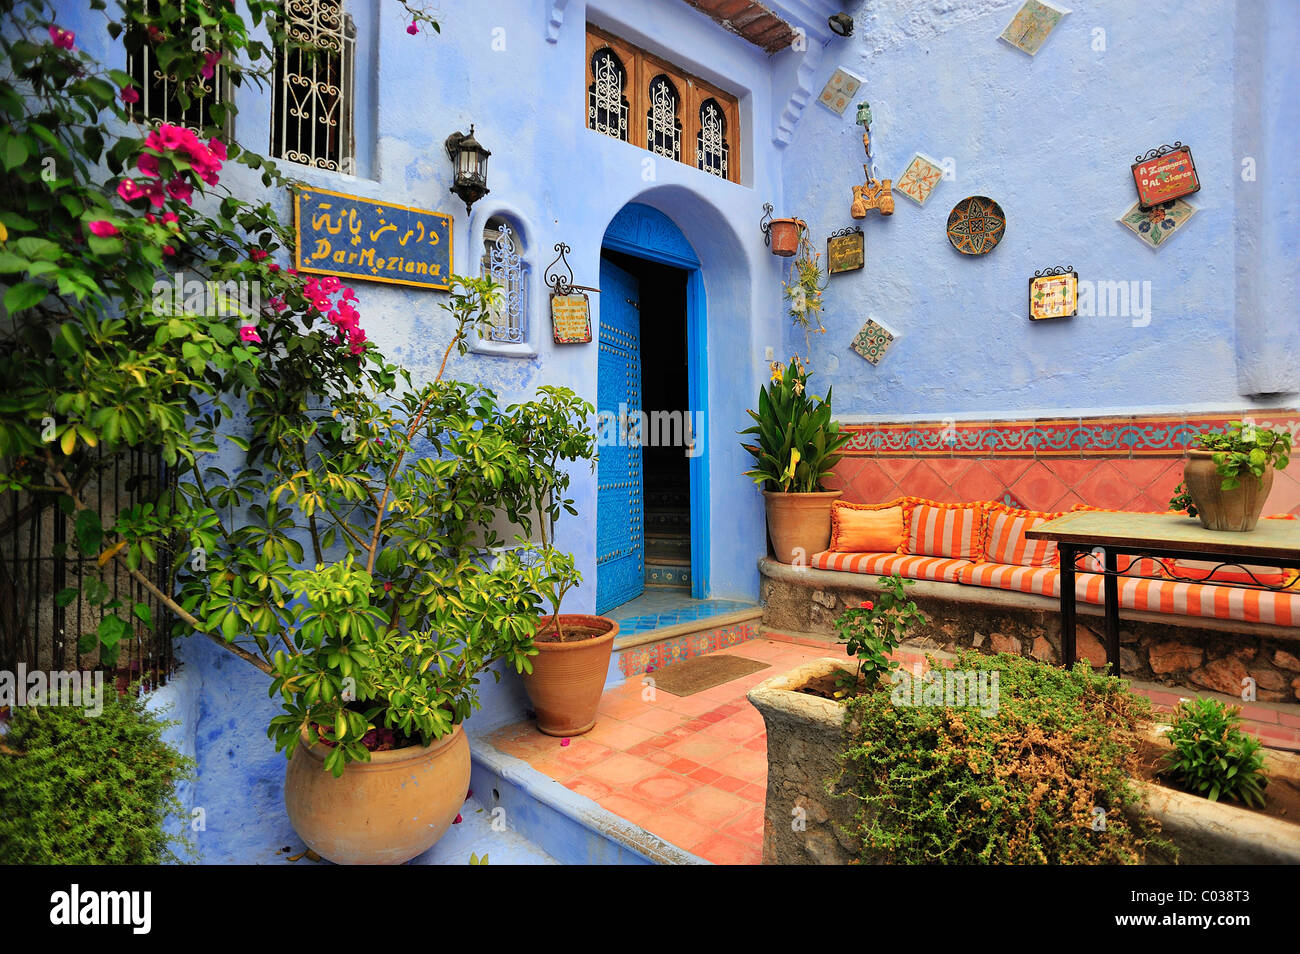 Front door of a house with a sitting area and plants chefchaouen front door of a house with a sitting area and plants chefchaouen reef mountains morocco africa rubansaba